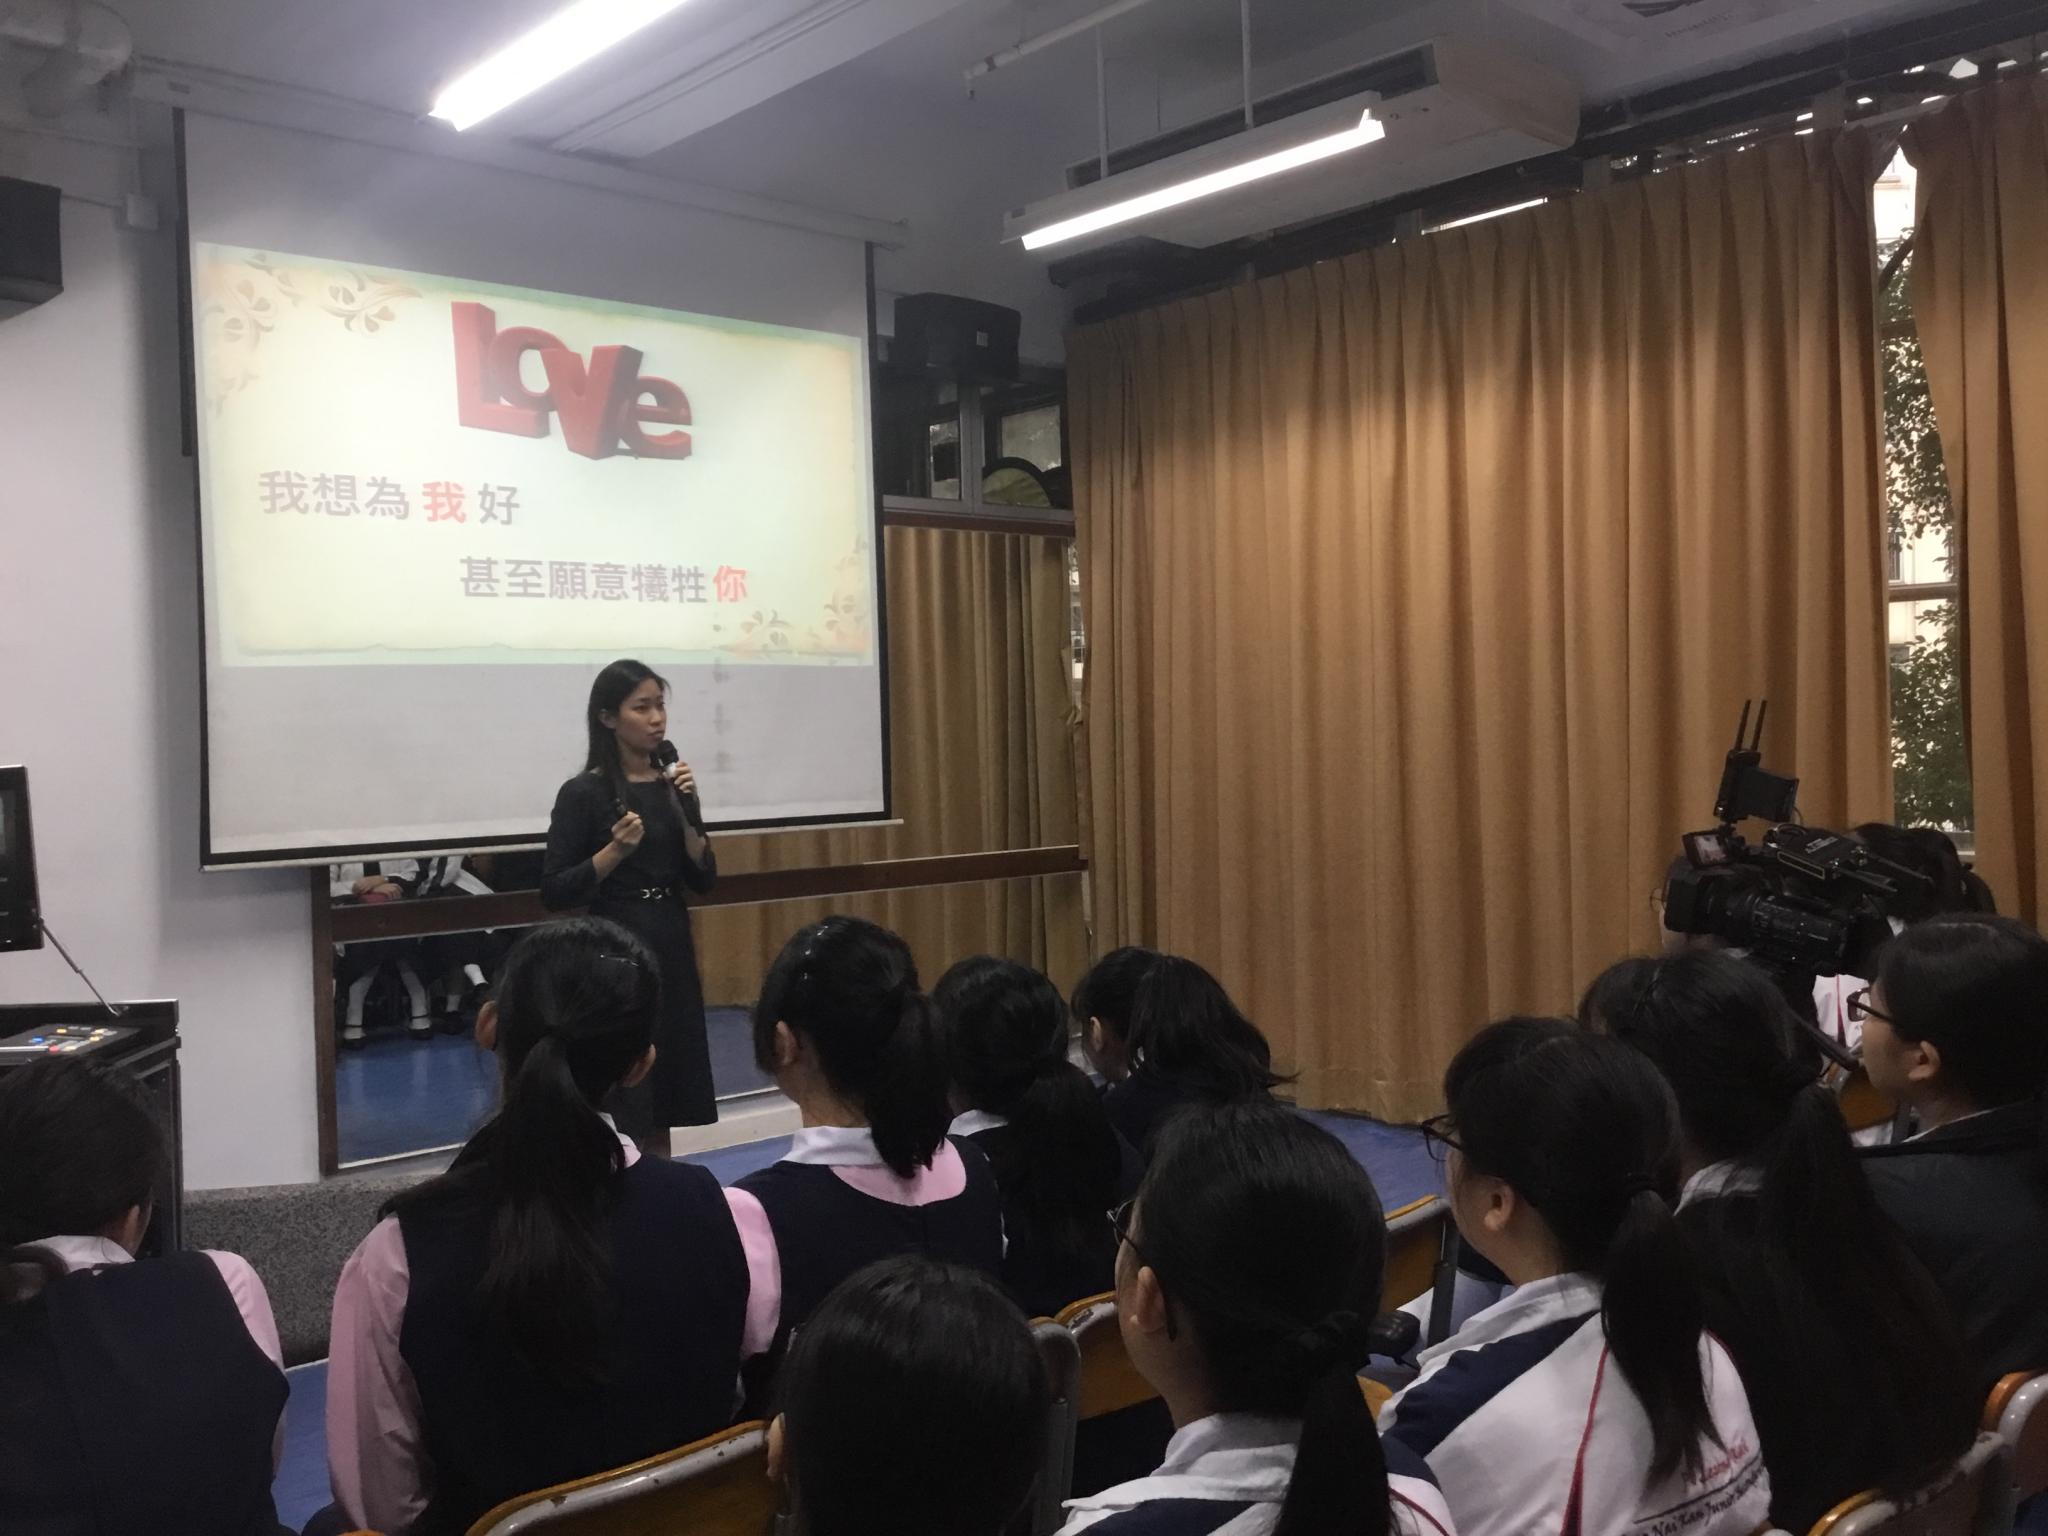 Ms. Anna Cheung, a speaker from The Hong Kong Catholic Marriage Advisory Council is giving a talk to our students.